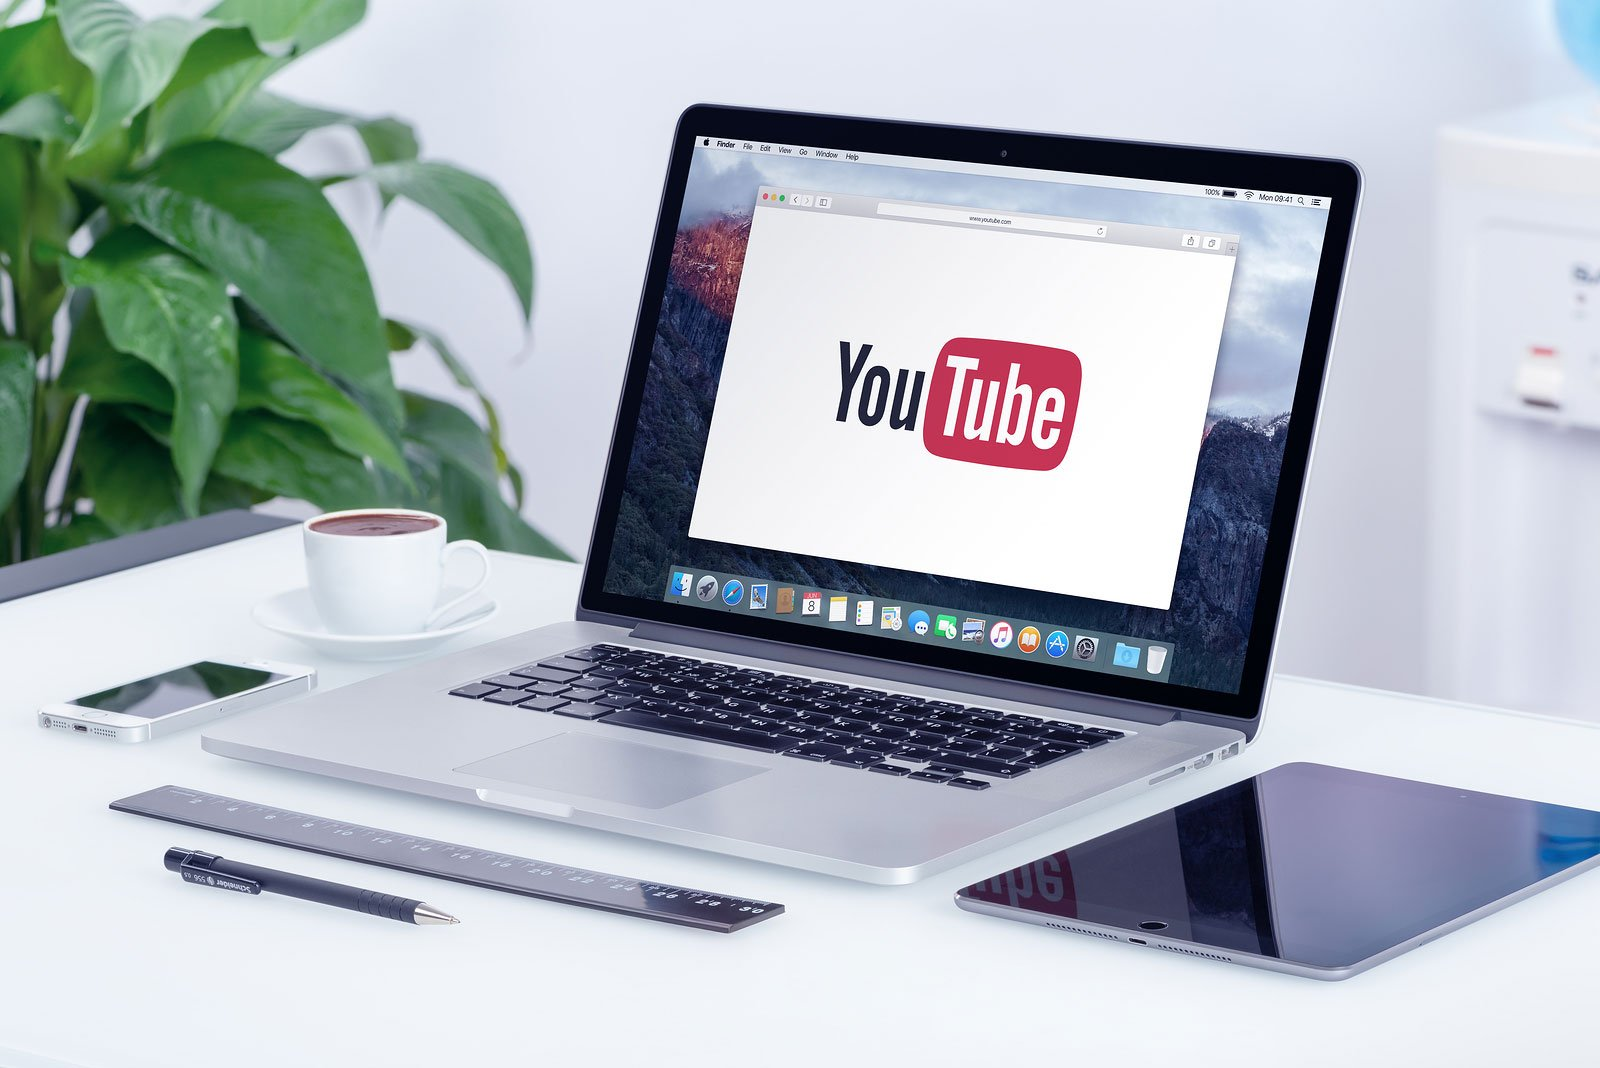 5 YouTube Sales Videos To Give You A Real Belly Laugh